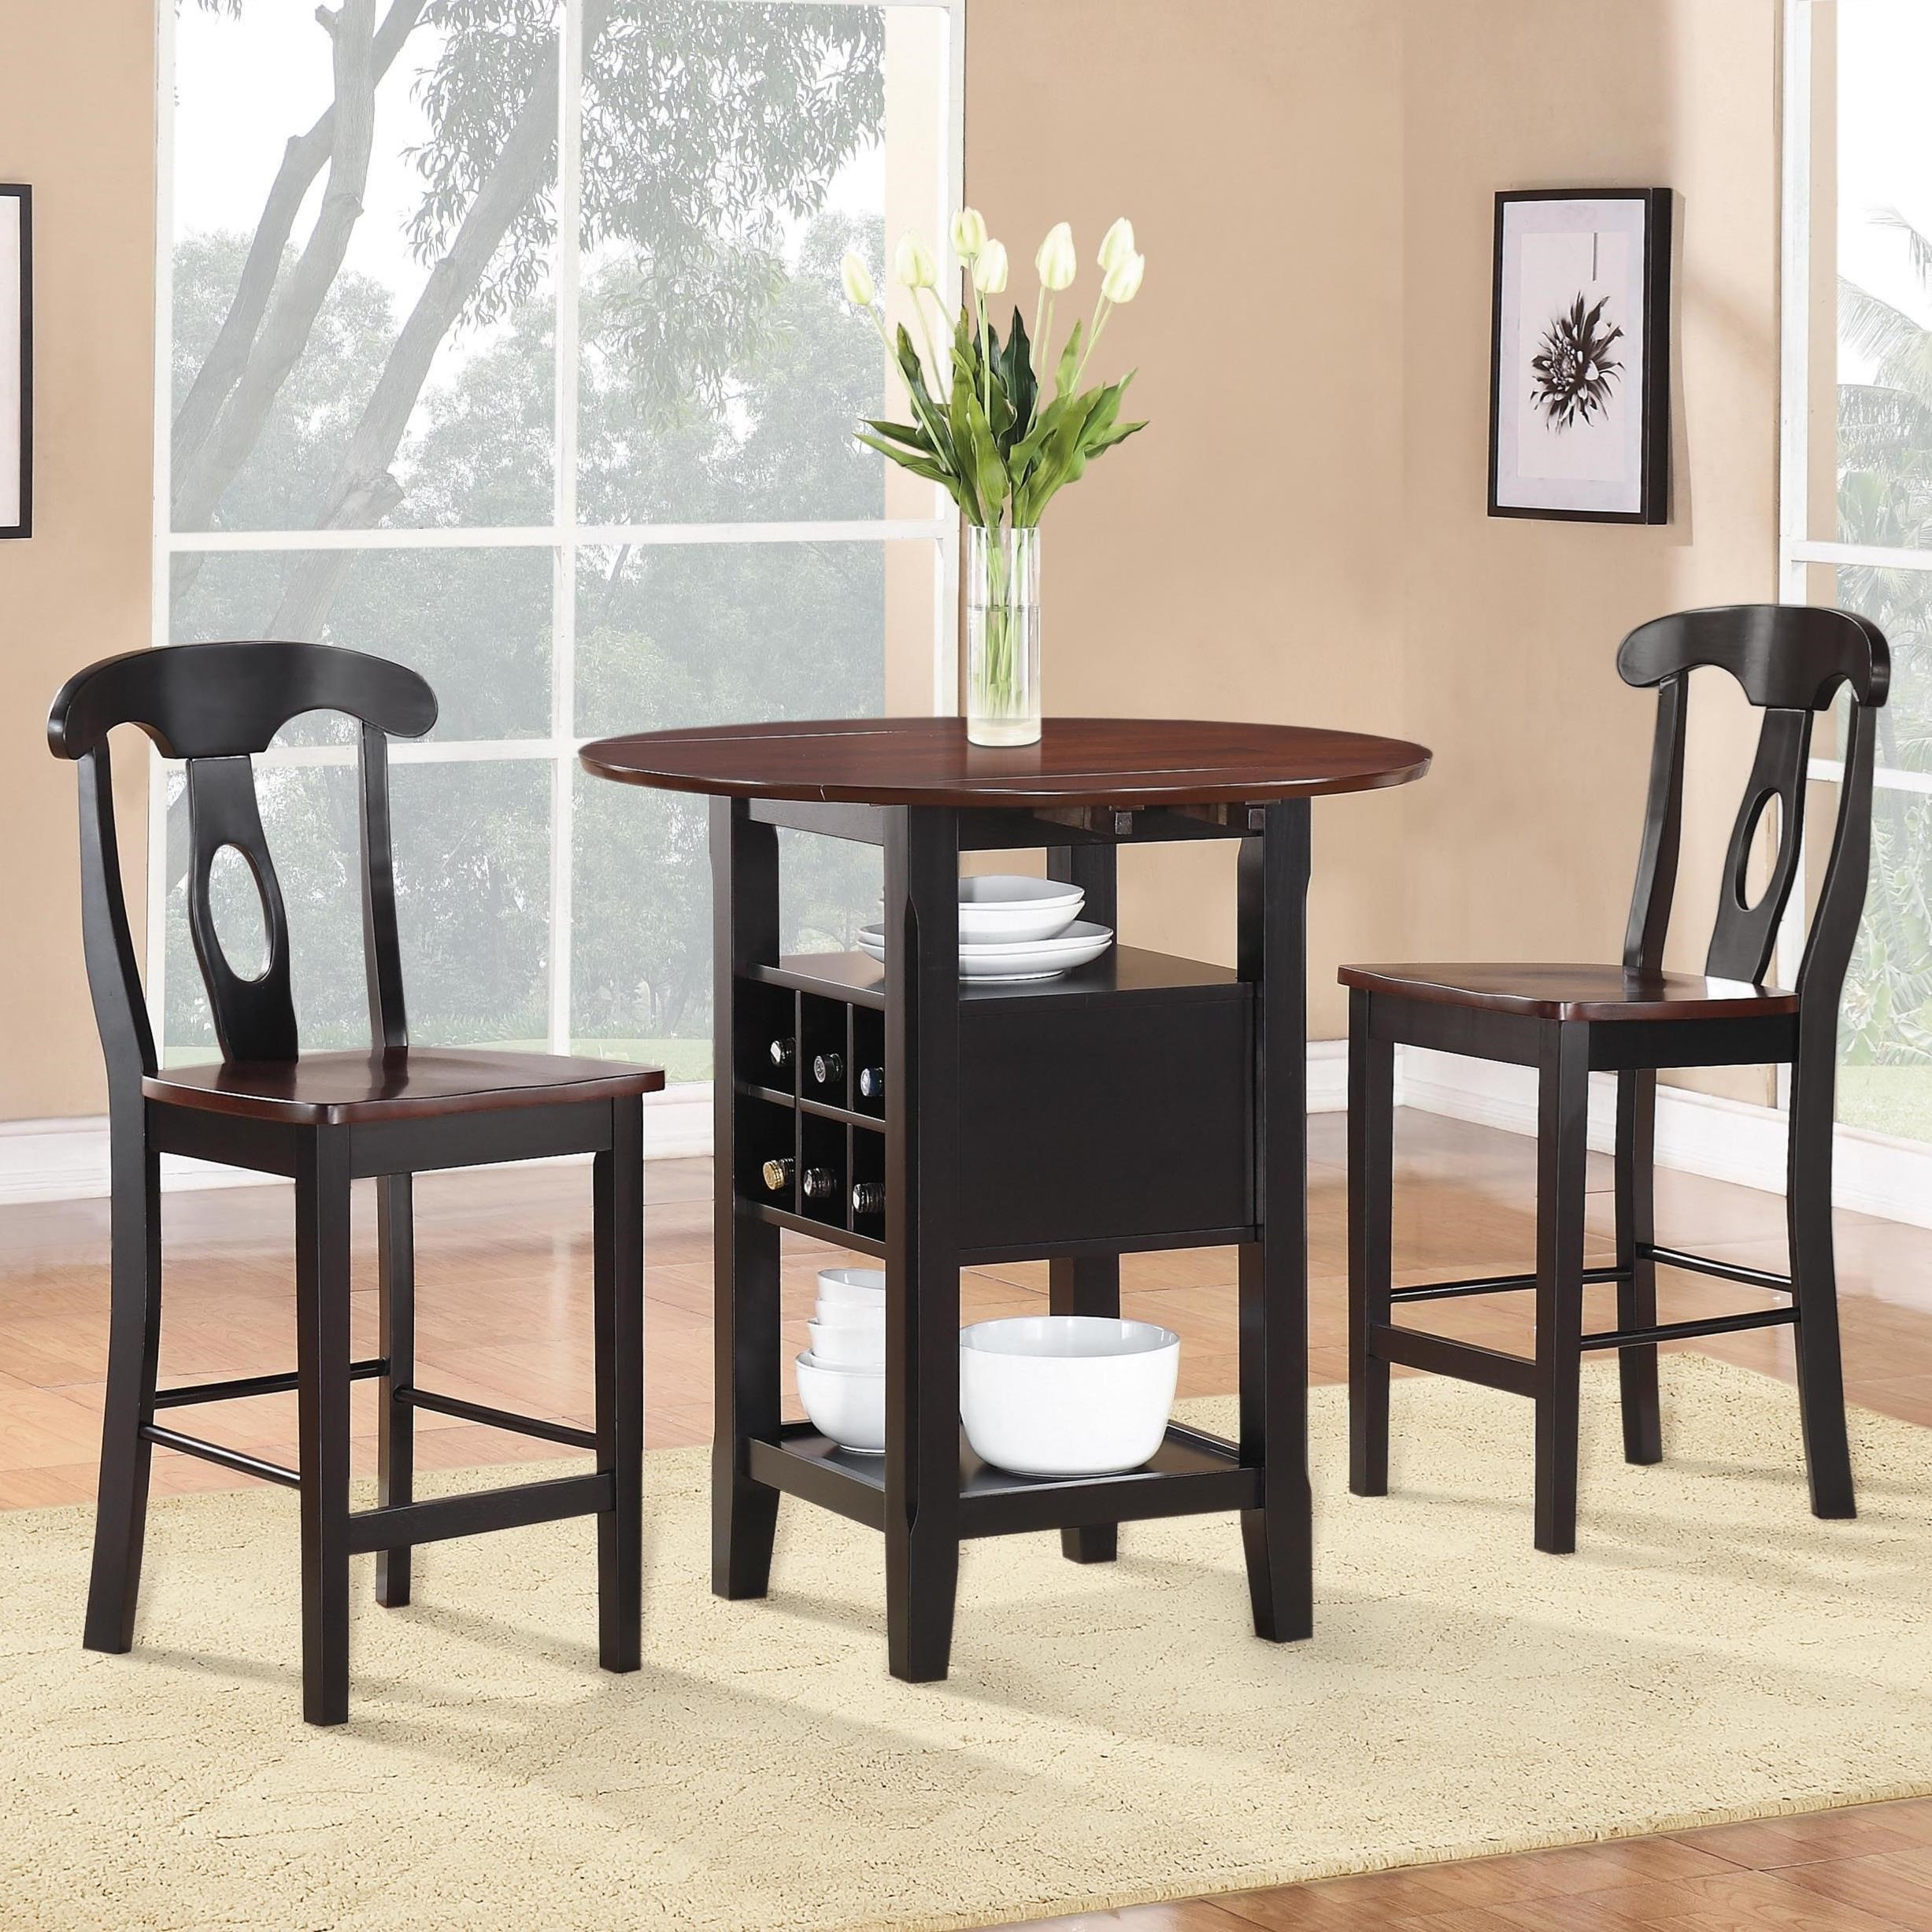 Pub Table and Chair Set